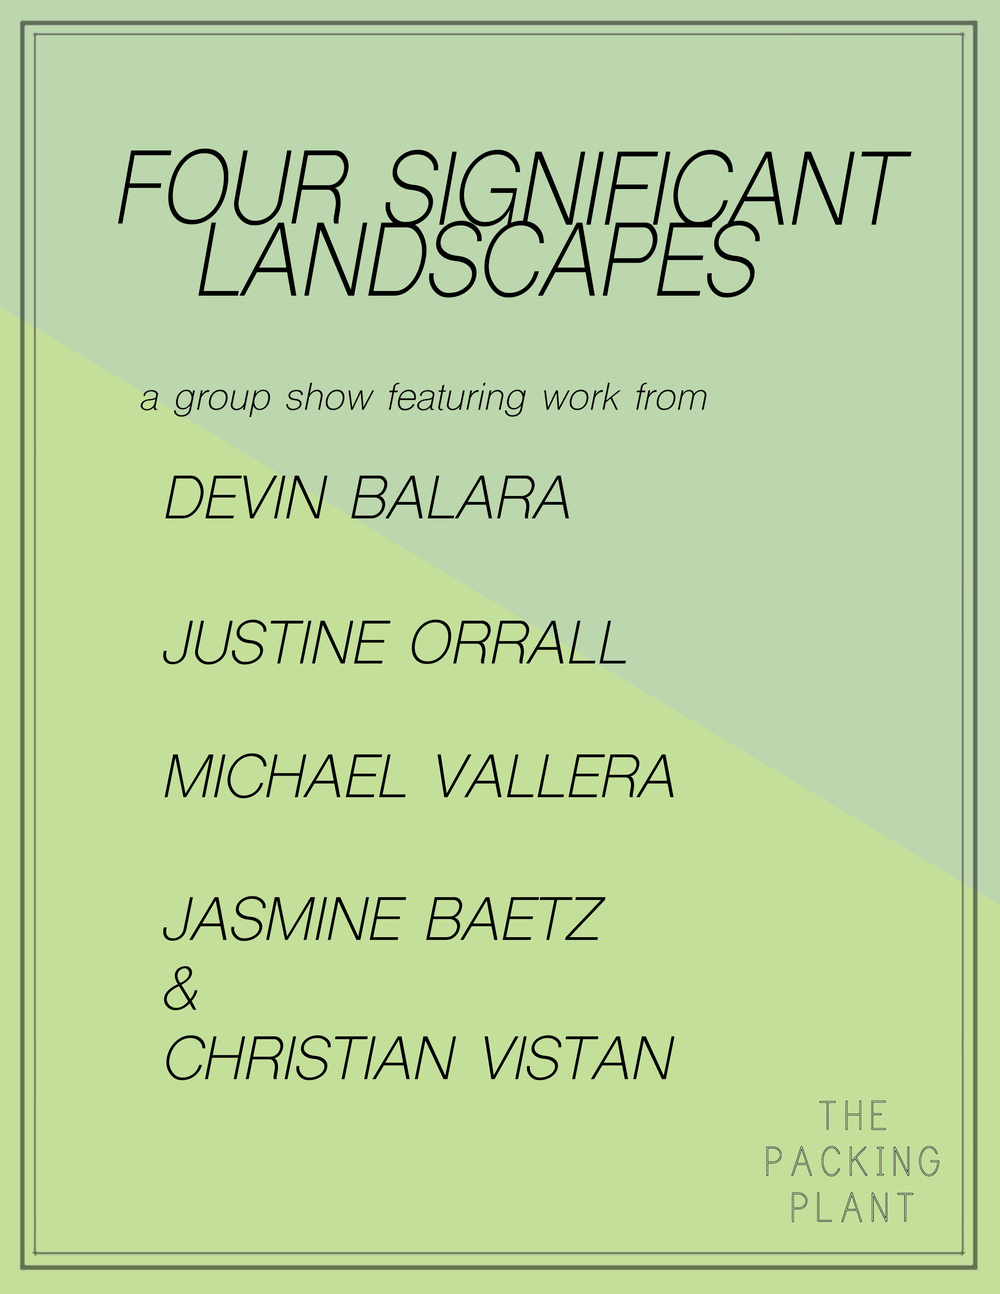 Four Significant Landscapes   Devin Balara, Justine Orrall, Michael Vallera, Jasmine Baetz & Christian Vistan  July 2015